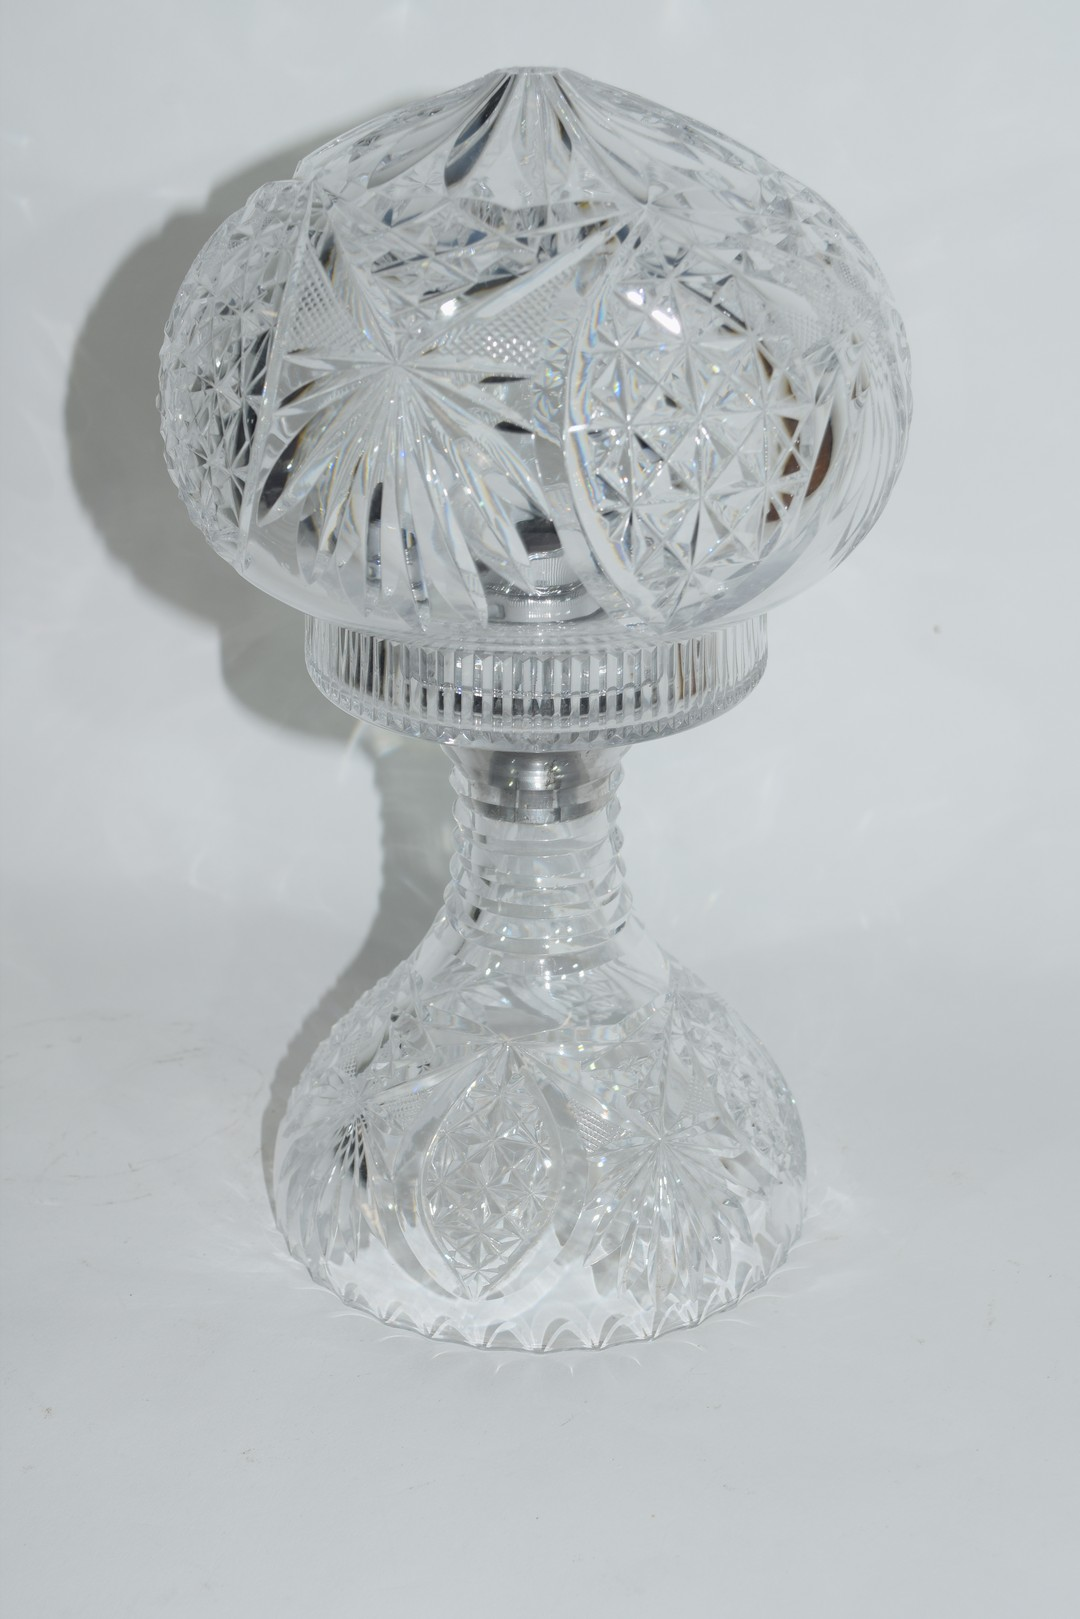 Cut glass lamp and shade - Image 4 of 5